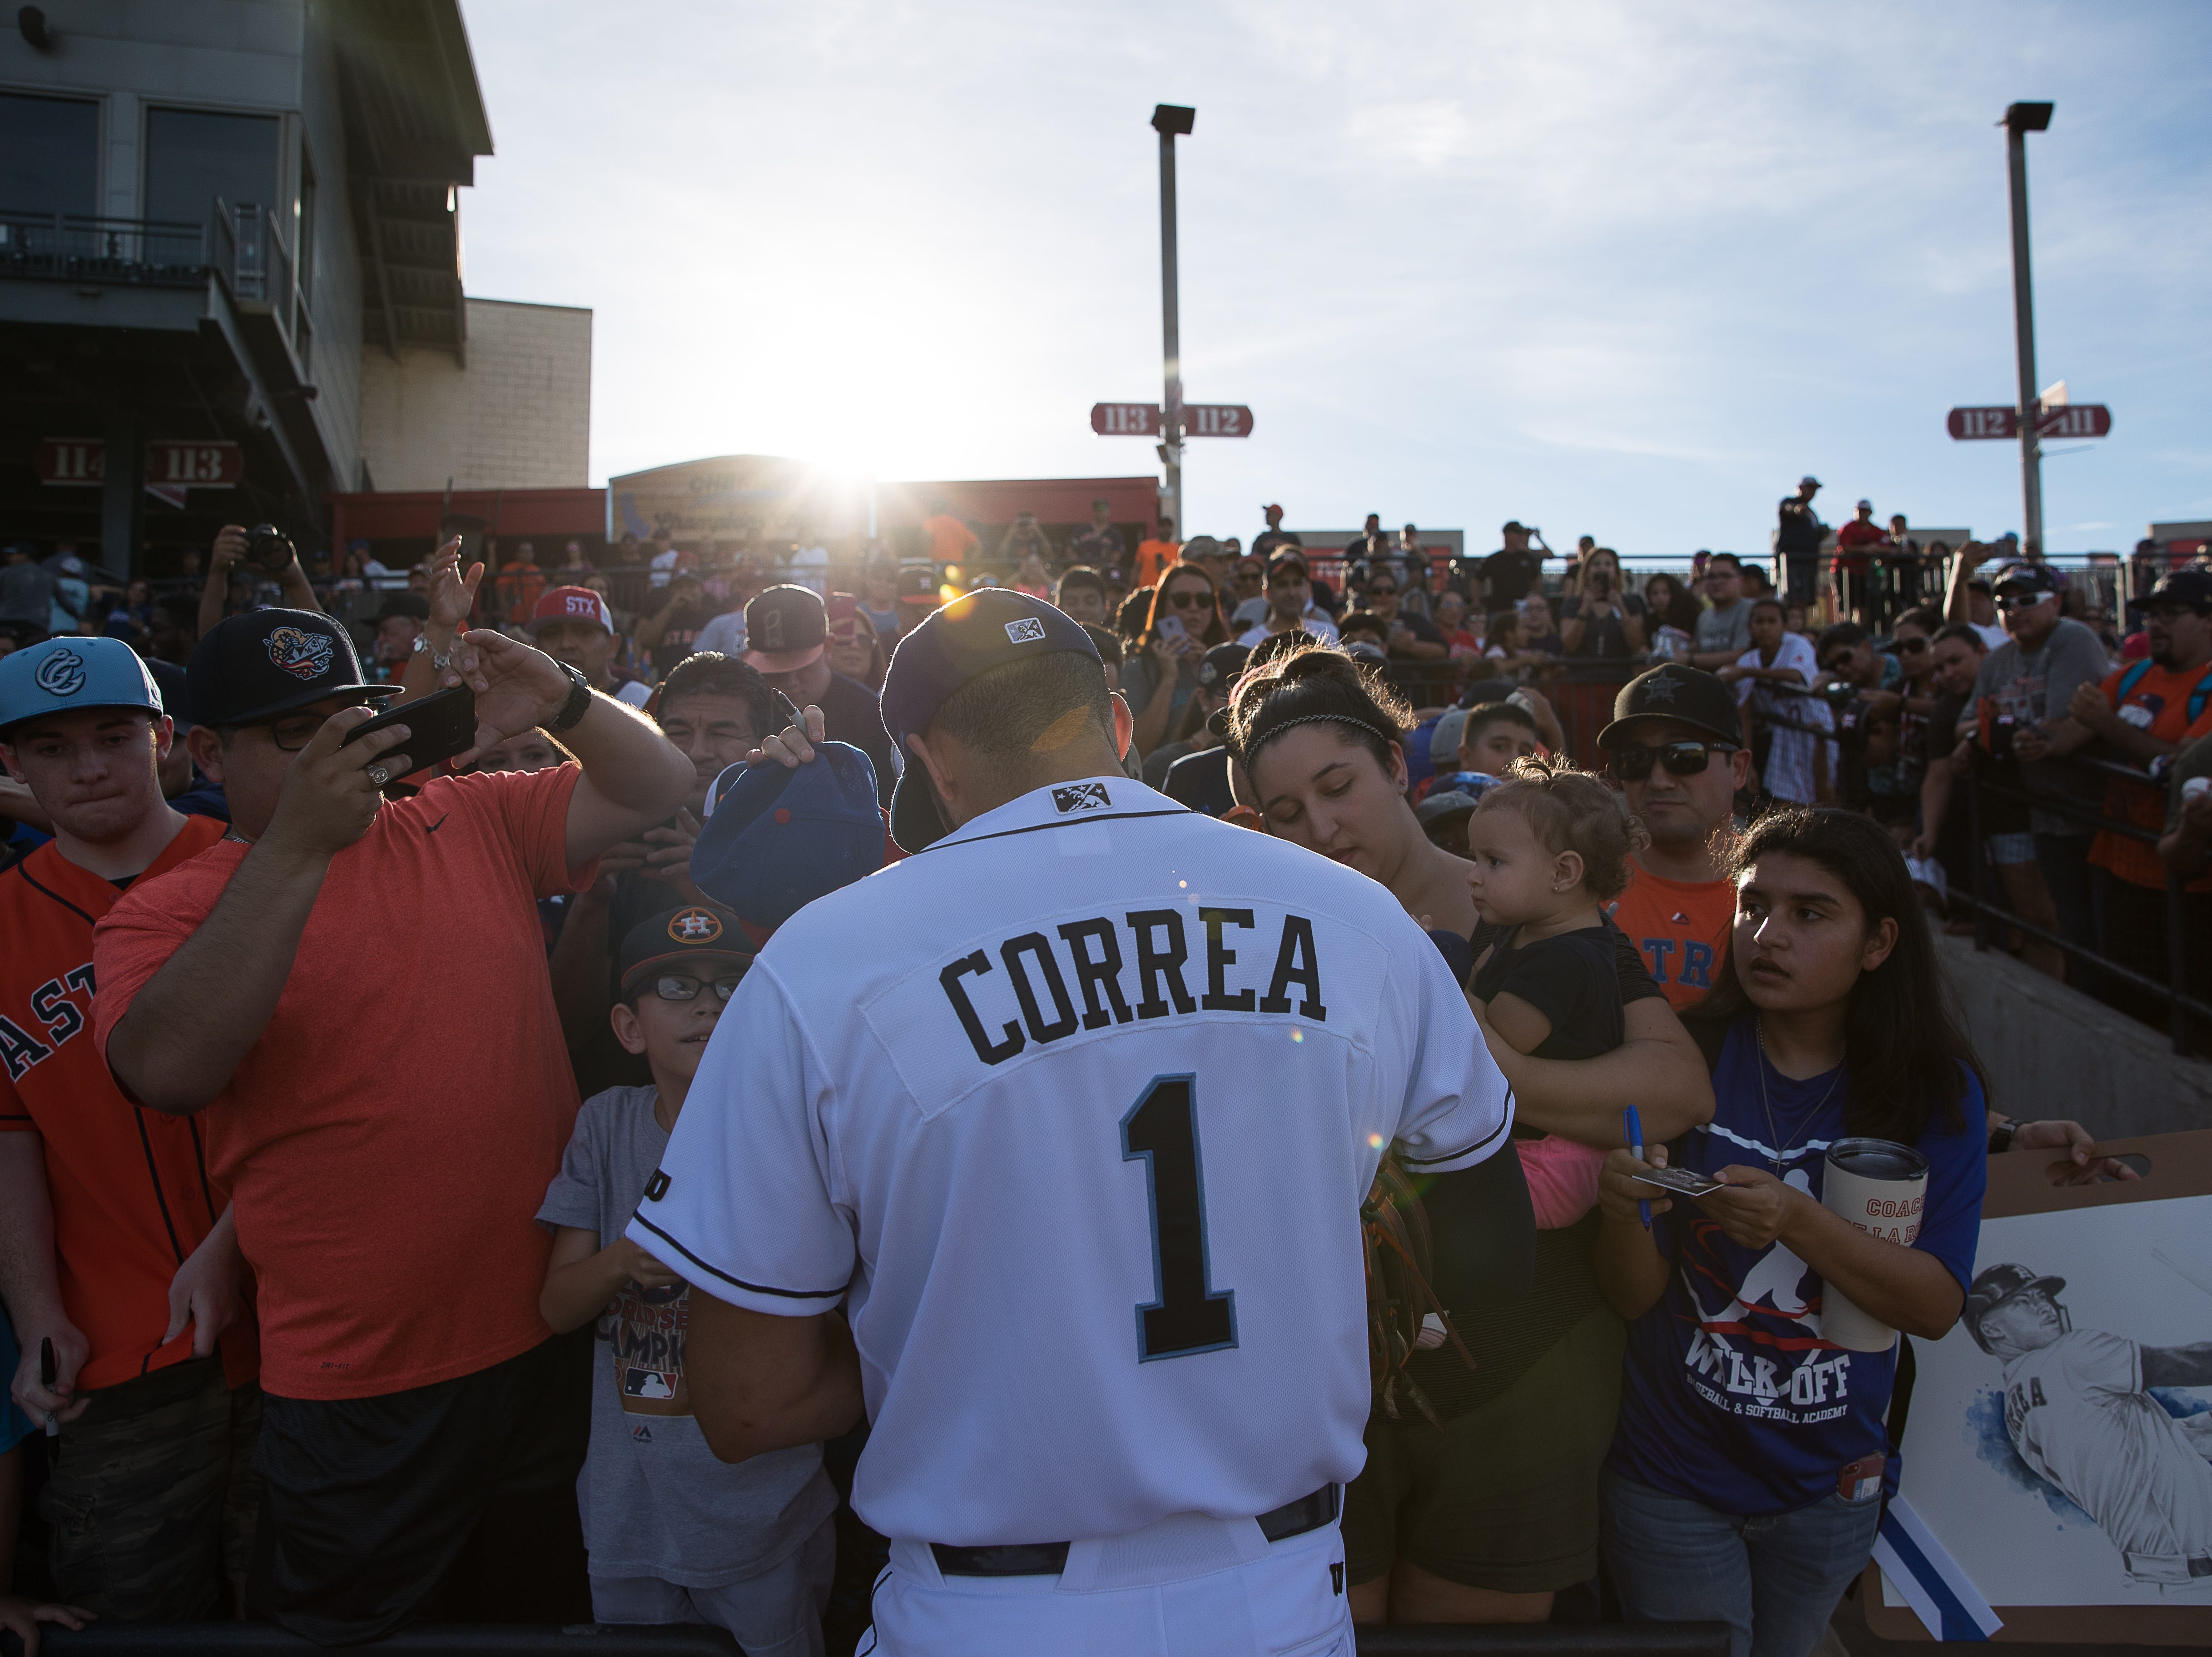 Carlos Correa signs autographs before the Corpus Christi Hooks' game against the Tulsa Drillers at Whataburger Field on Tuesday, Aug. 7, 2018. Correa, from the Houston Astros, is currently playing for the Hooks on rehab assignment.